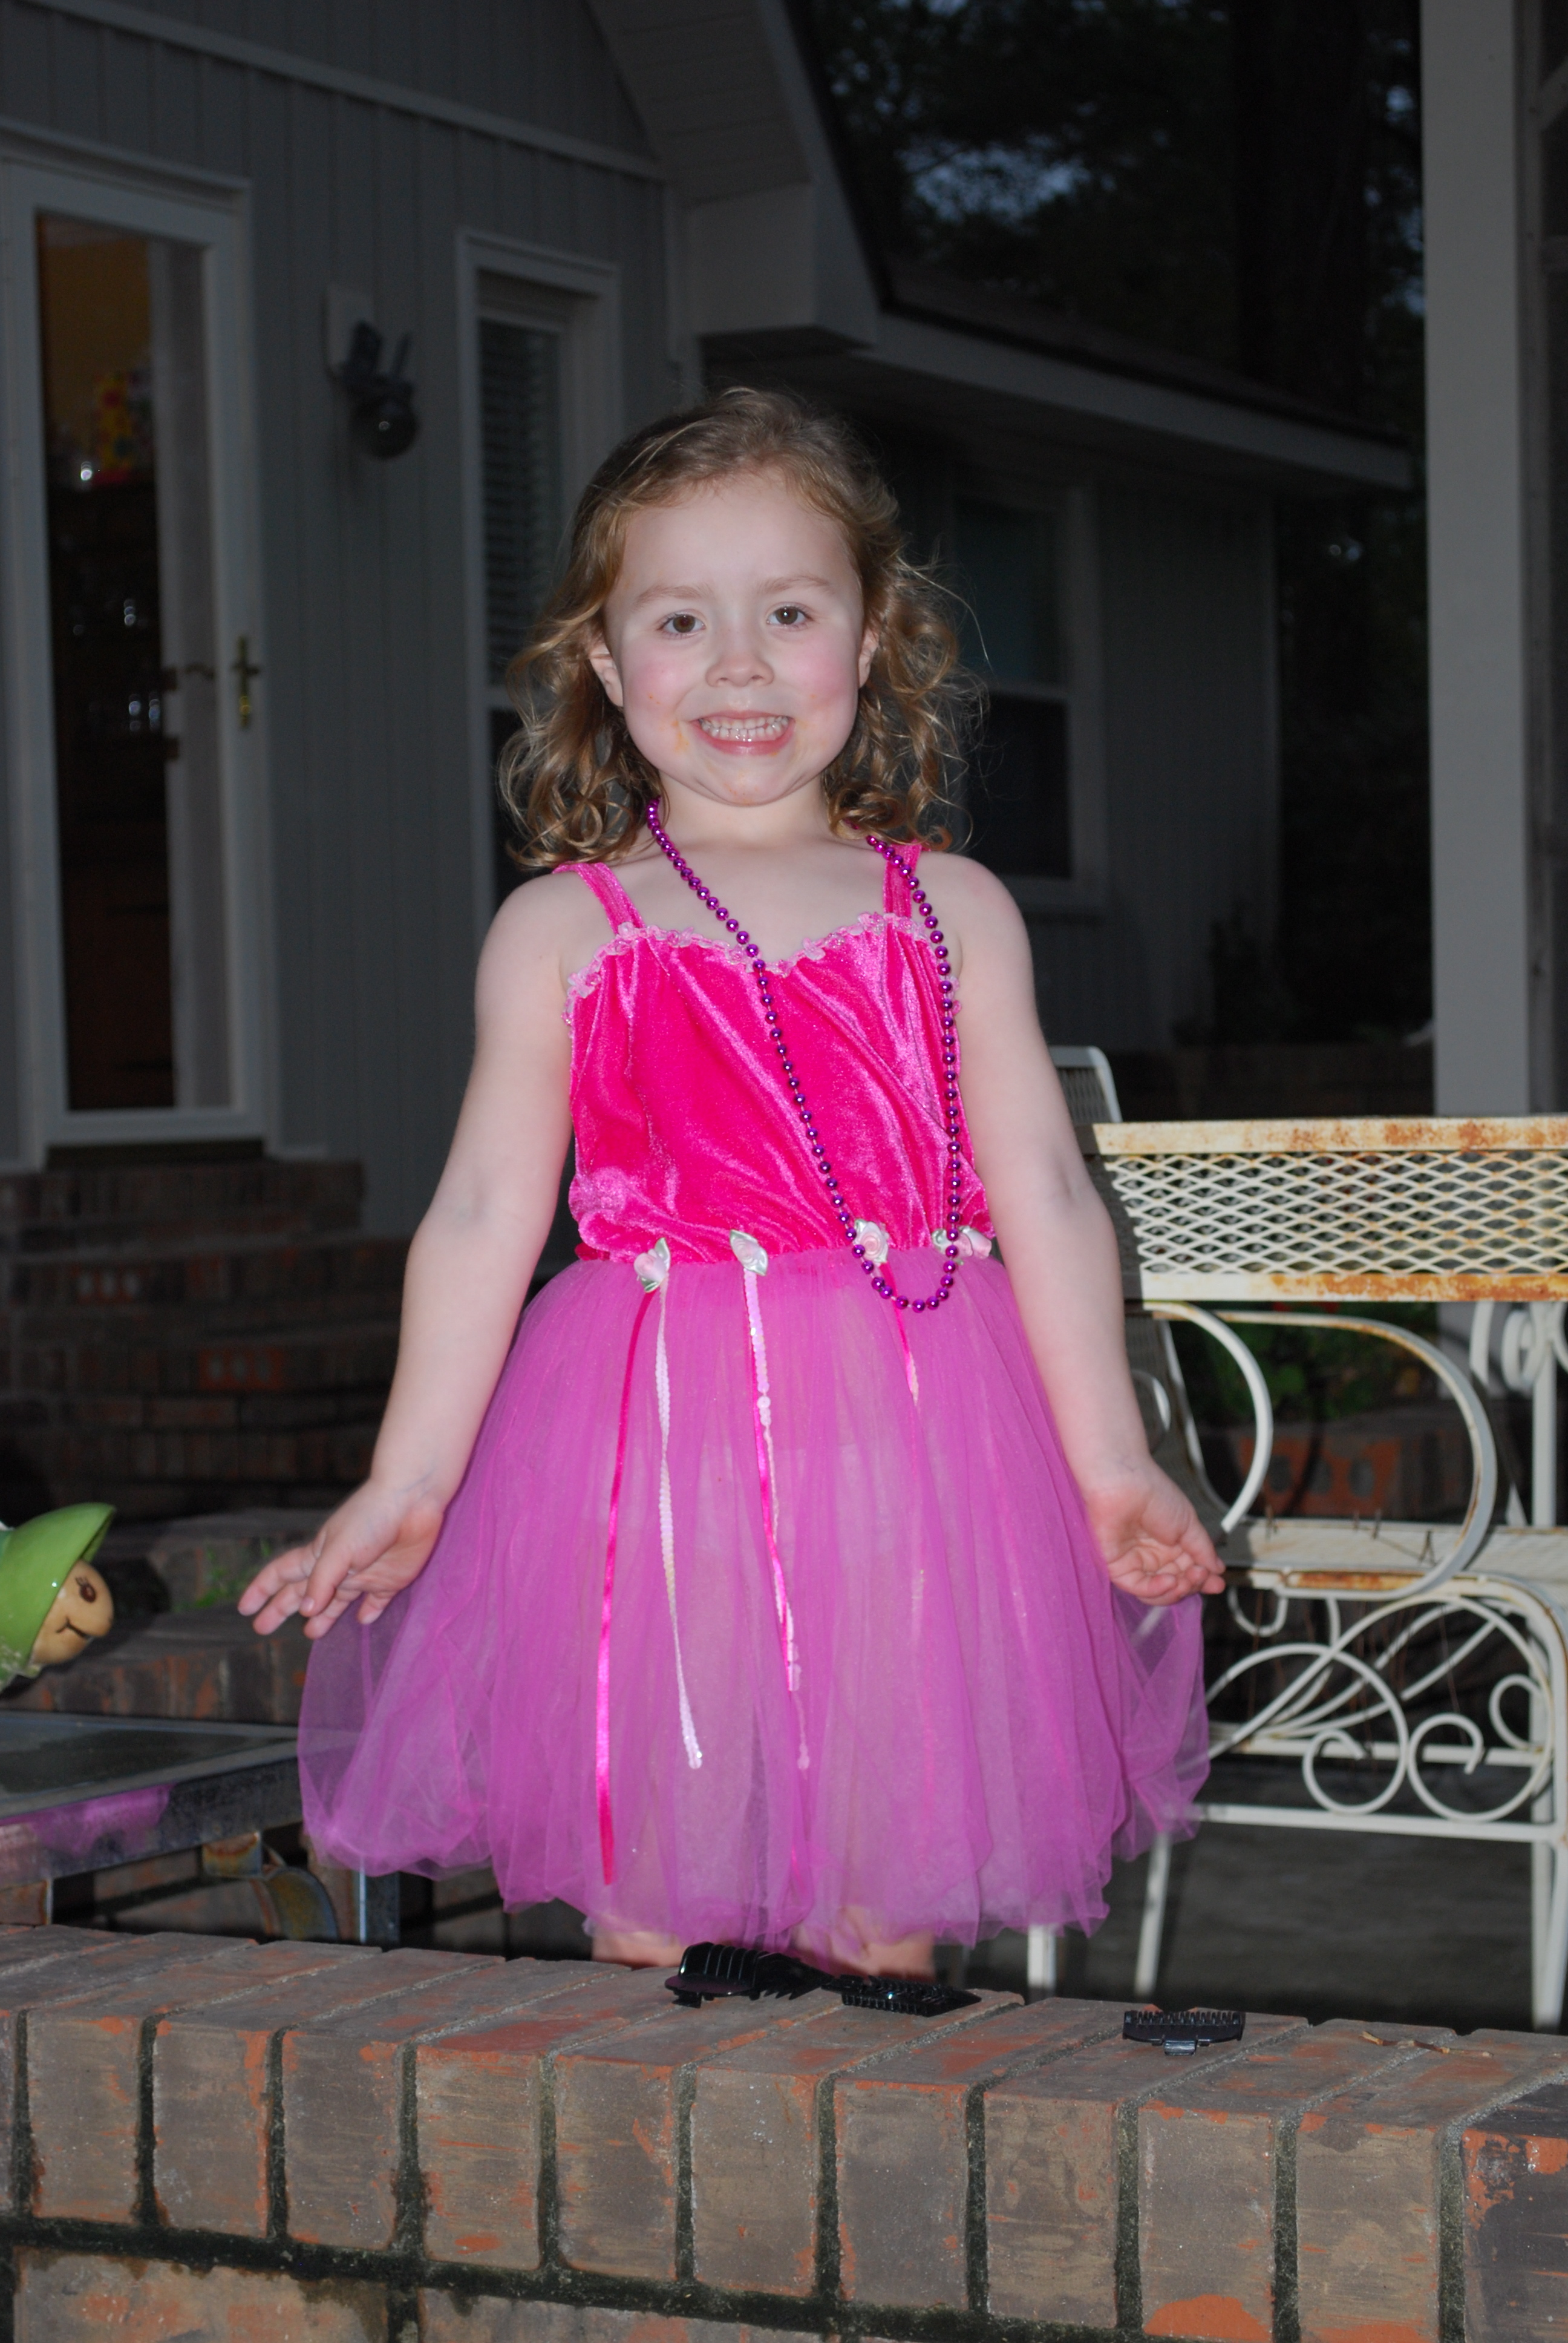 Ruby in the fairy dress